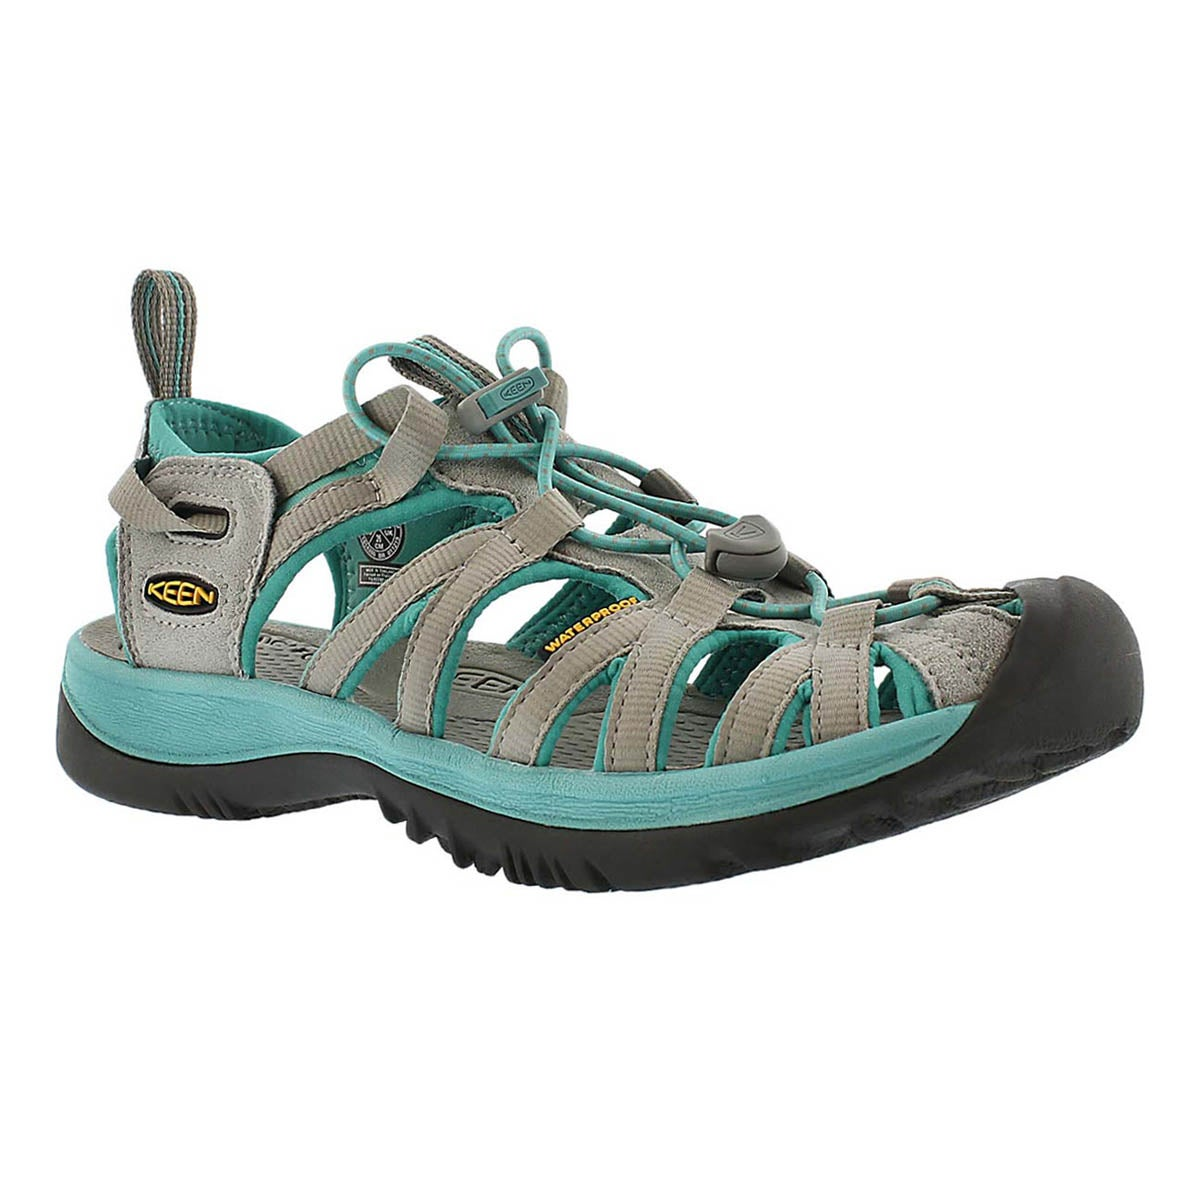 Women's WHISPER grey lagoon sport sandals